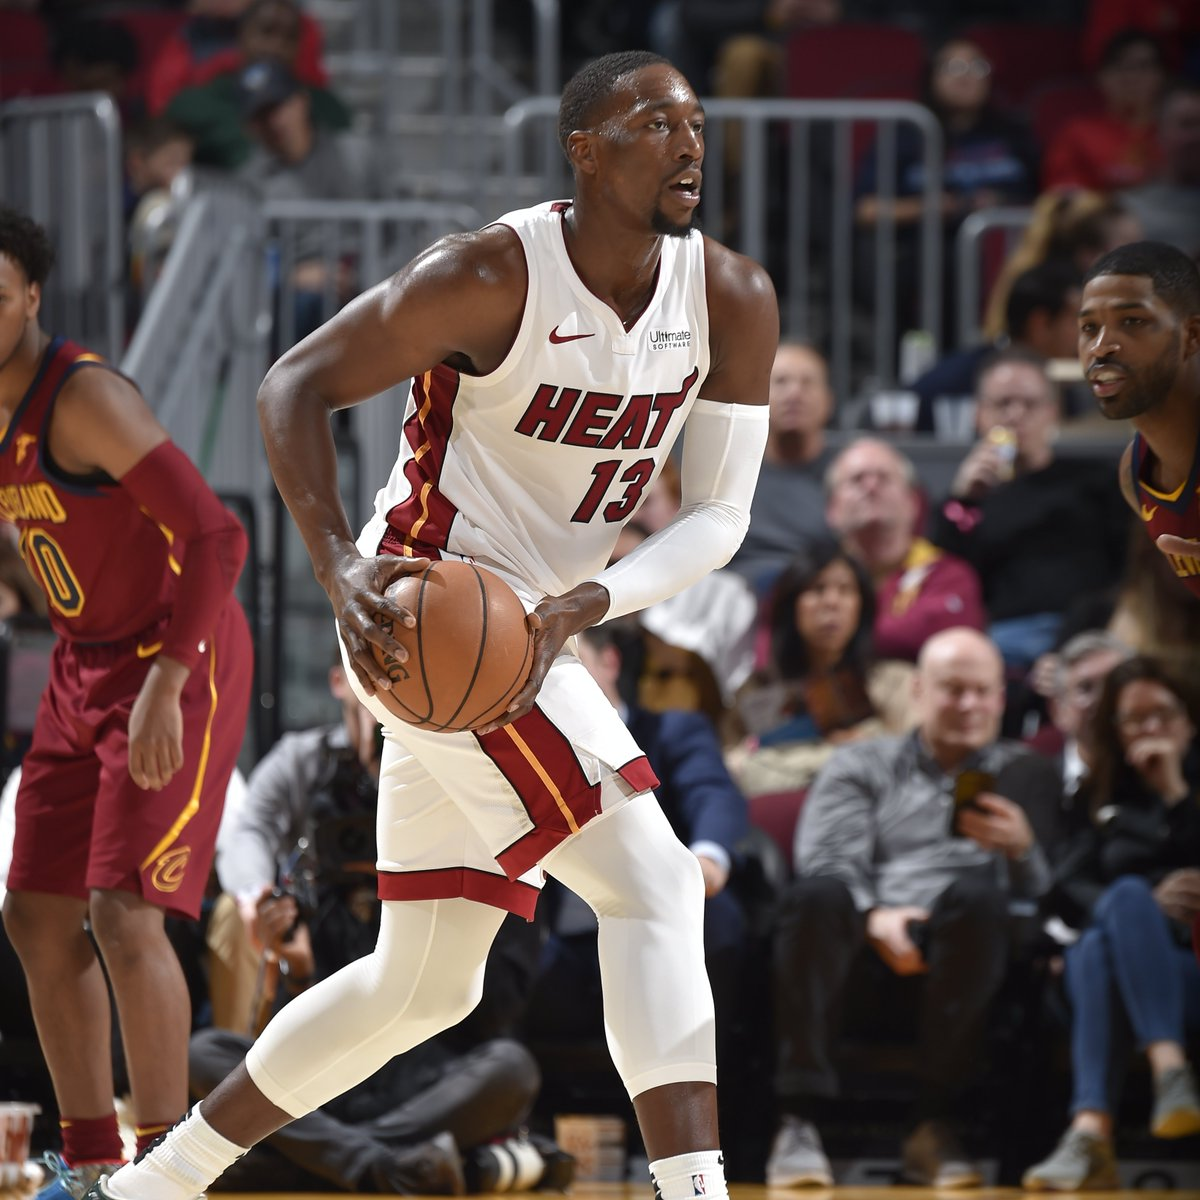 Bam Adebayo stuffs the stat sheet in the first half! 💪  9 PTS, 10 REB, 5 AST, 1 BLK, and 30.5 FPTS.